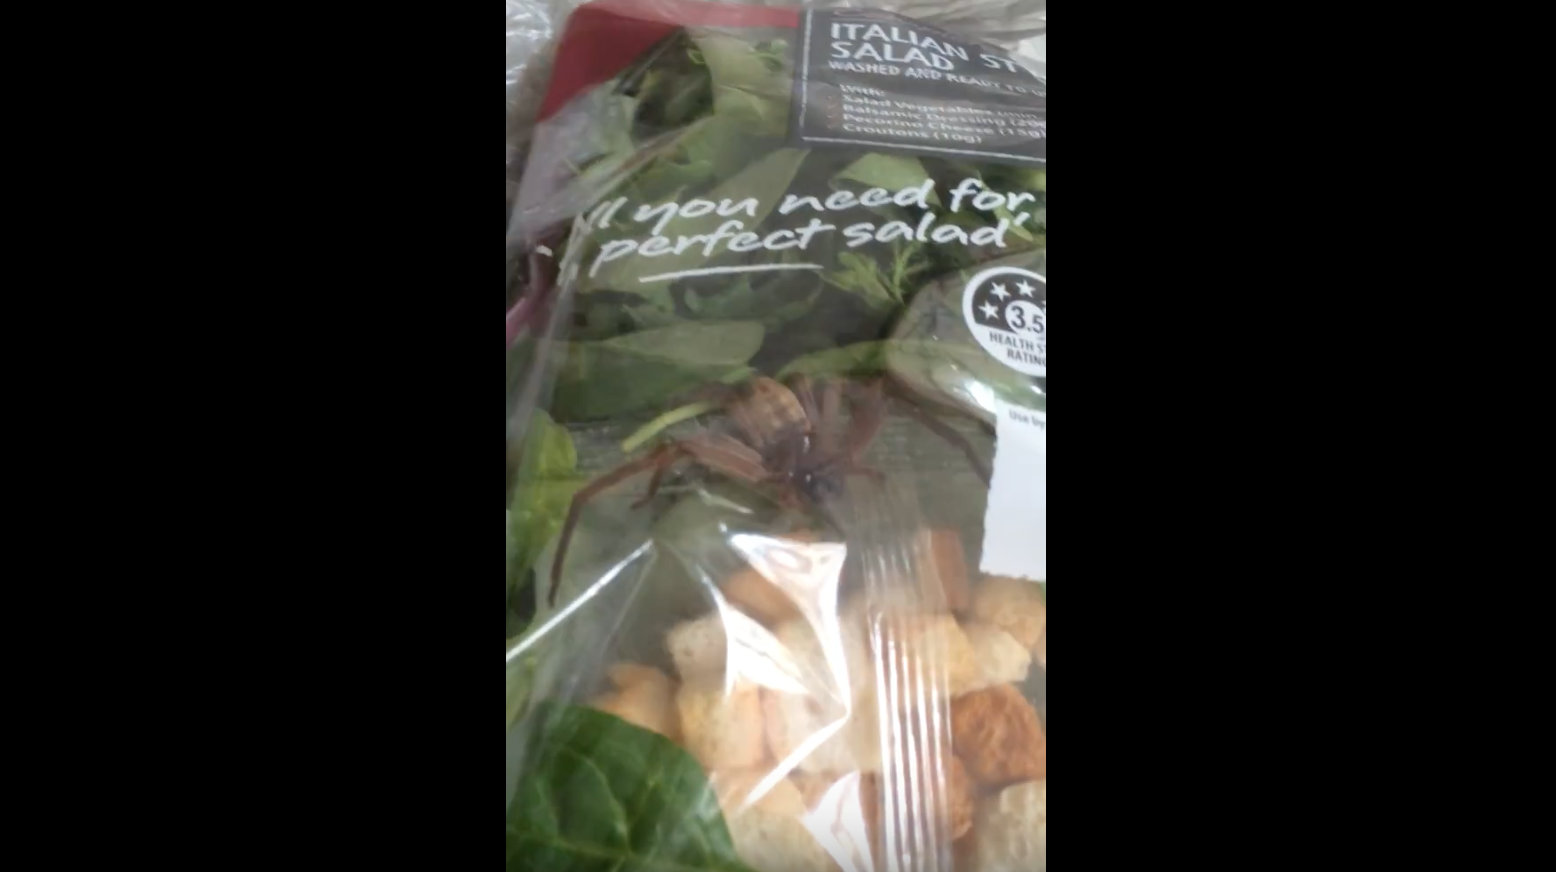 Giant Spider Found Kickin' It Inside Pre-Packaged Salad Mix